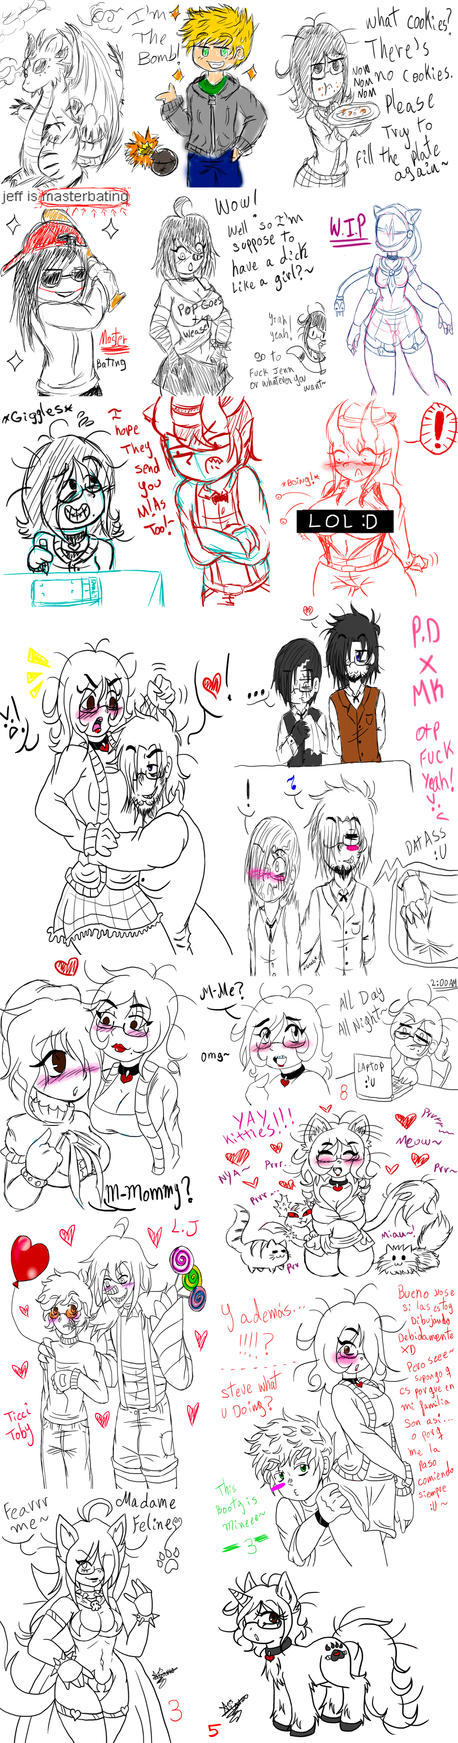 What I do on tumblr-A big amount of Doodles by SweetxAriannaxEngel